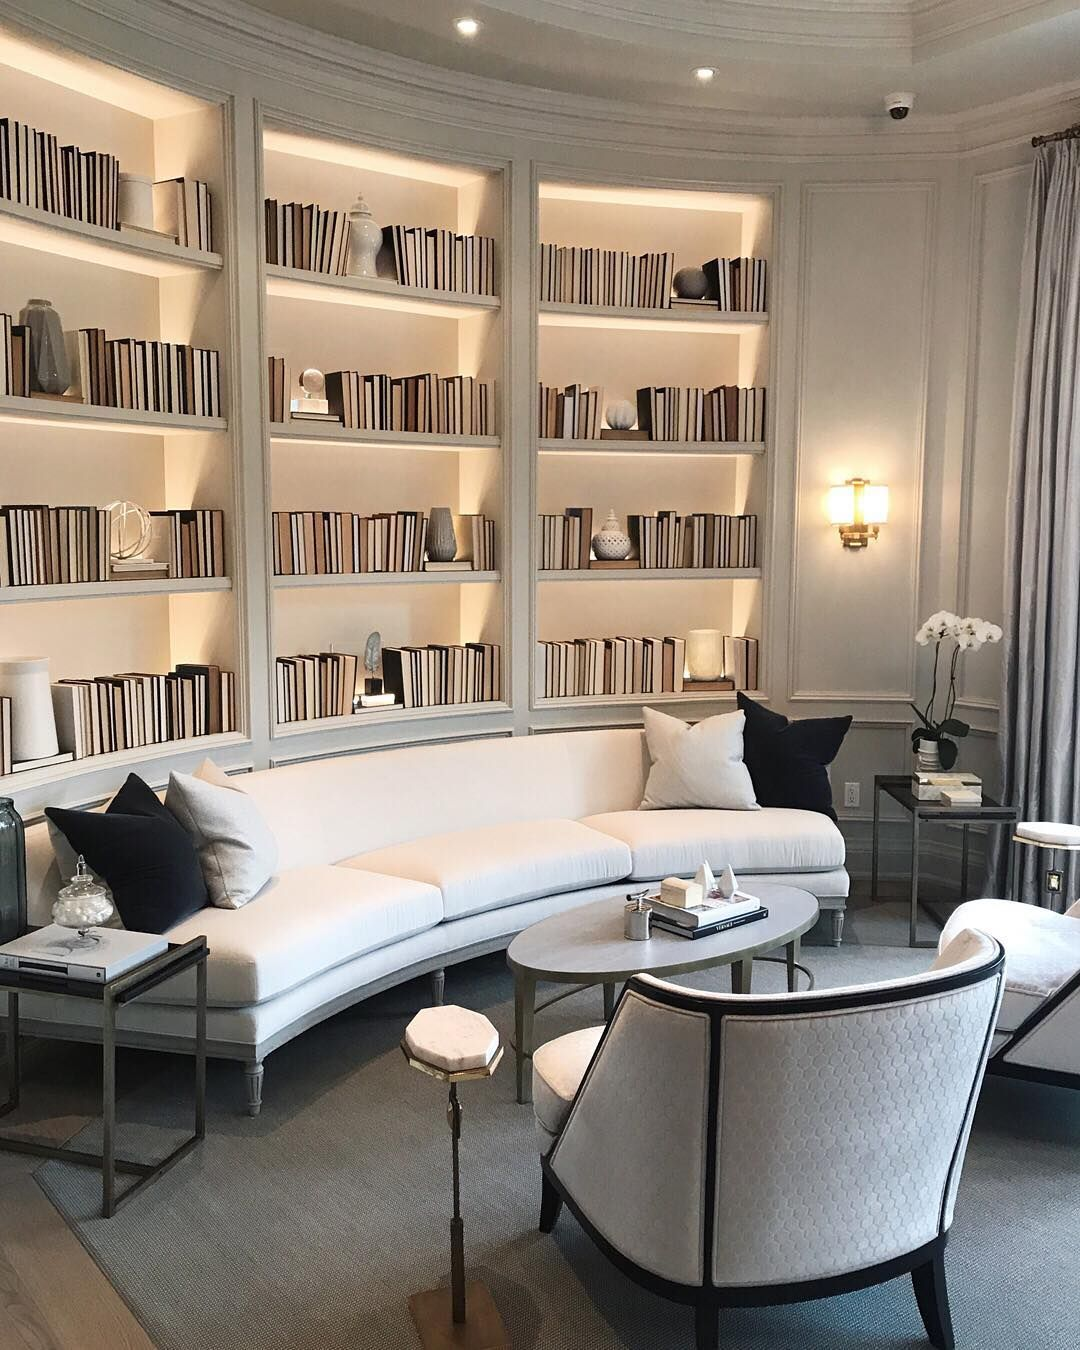 Contemporary Home Library Design: Beautiful Library Space. Home Interior. Bookshelves